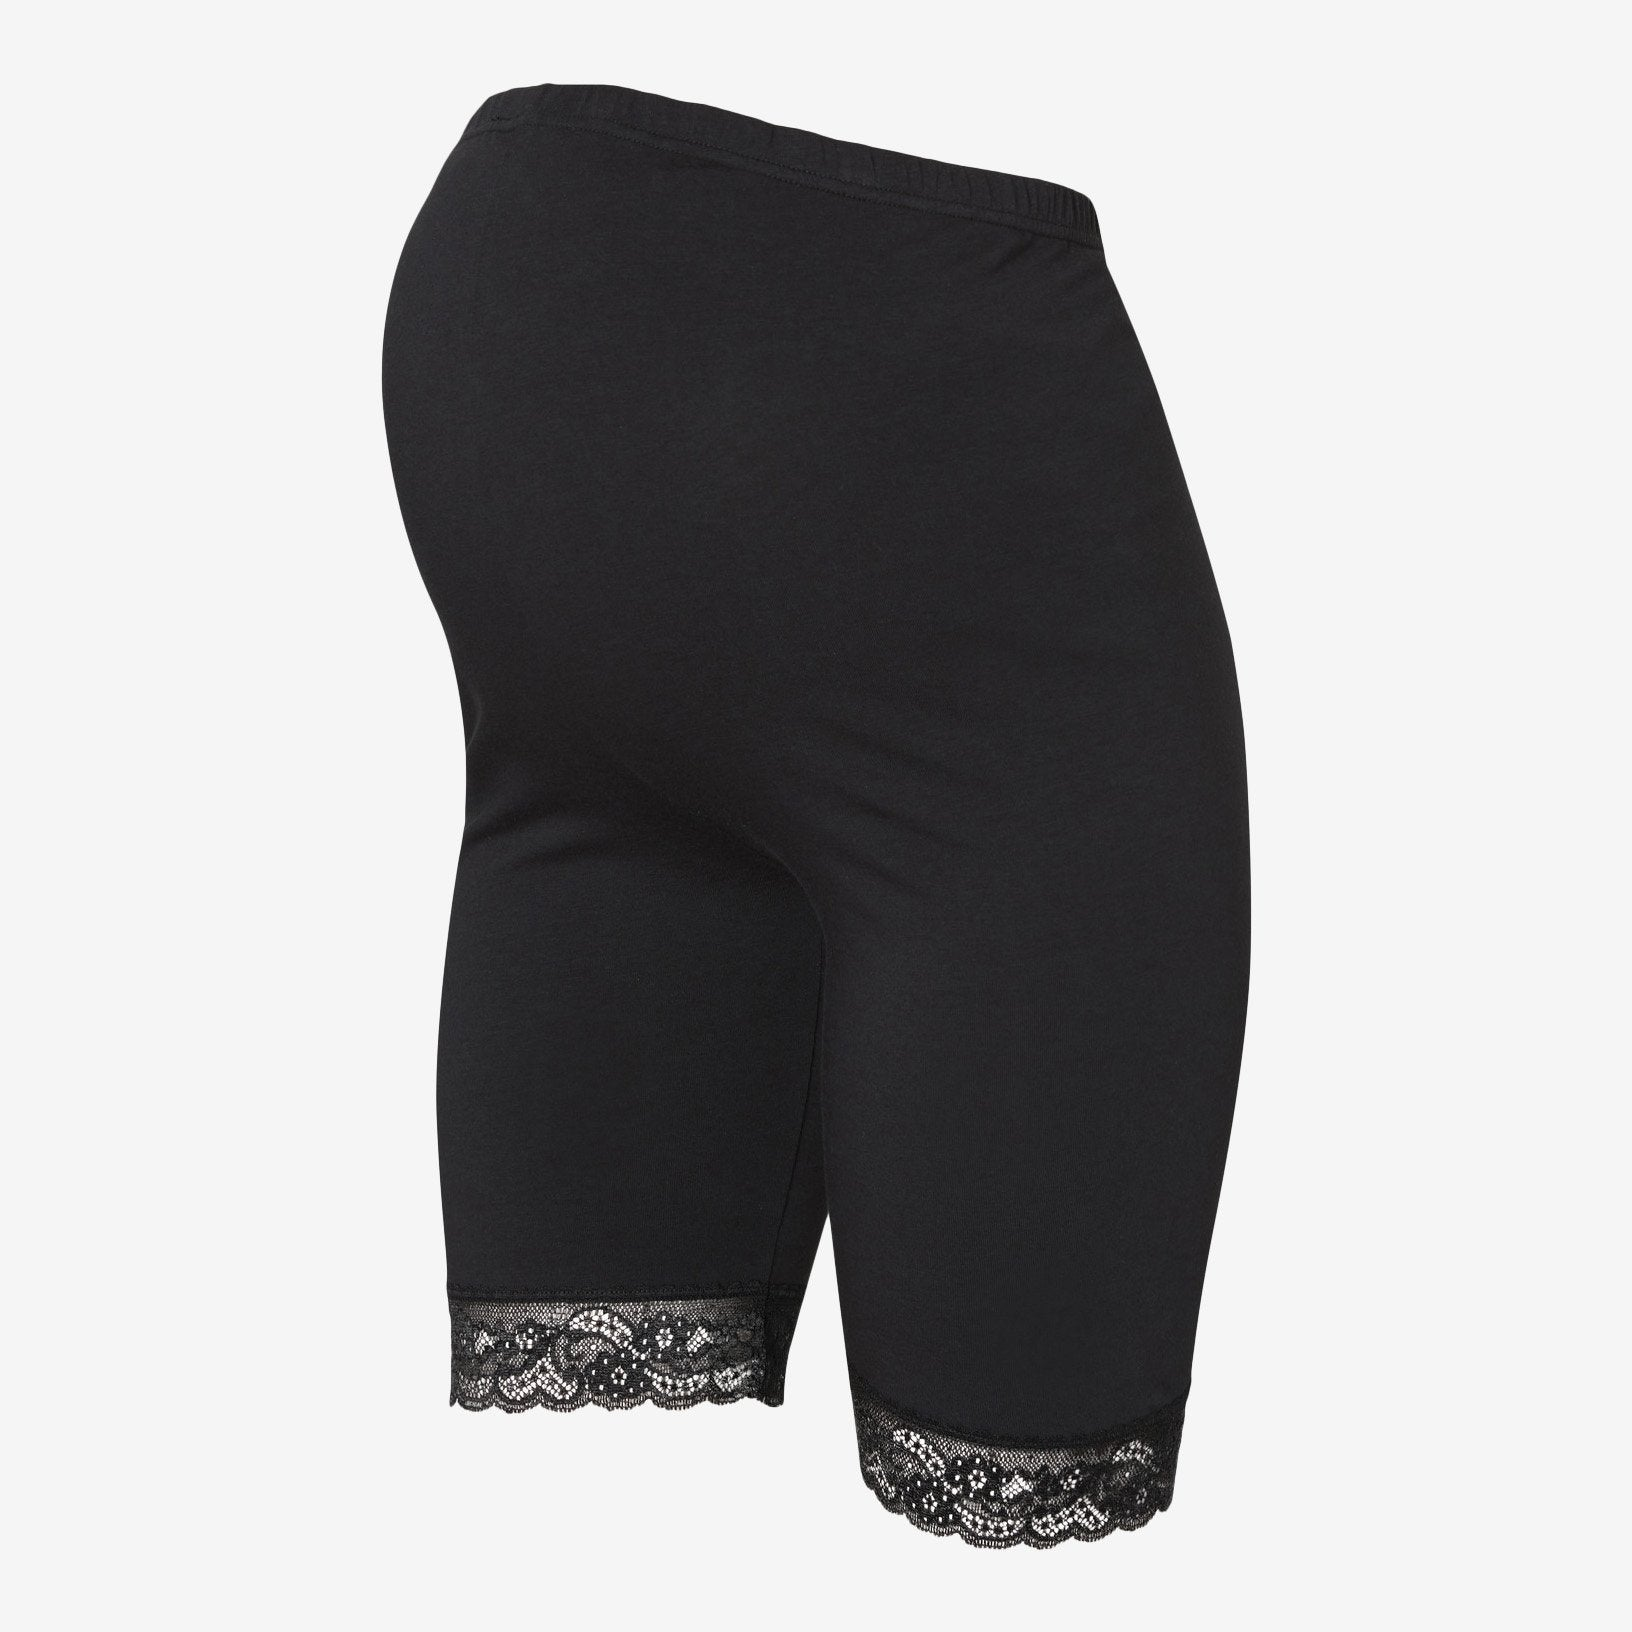 Image of   Mamalicious 2-pack korte leggings/shorts med blonder til gravide - Sort - L